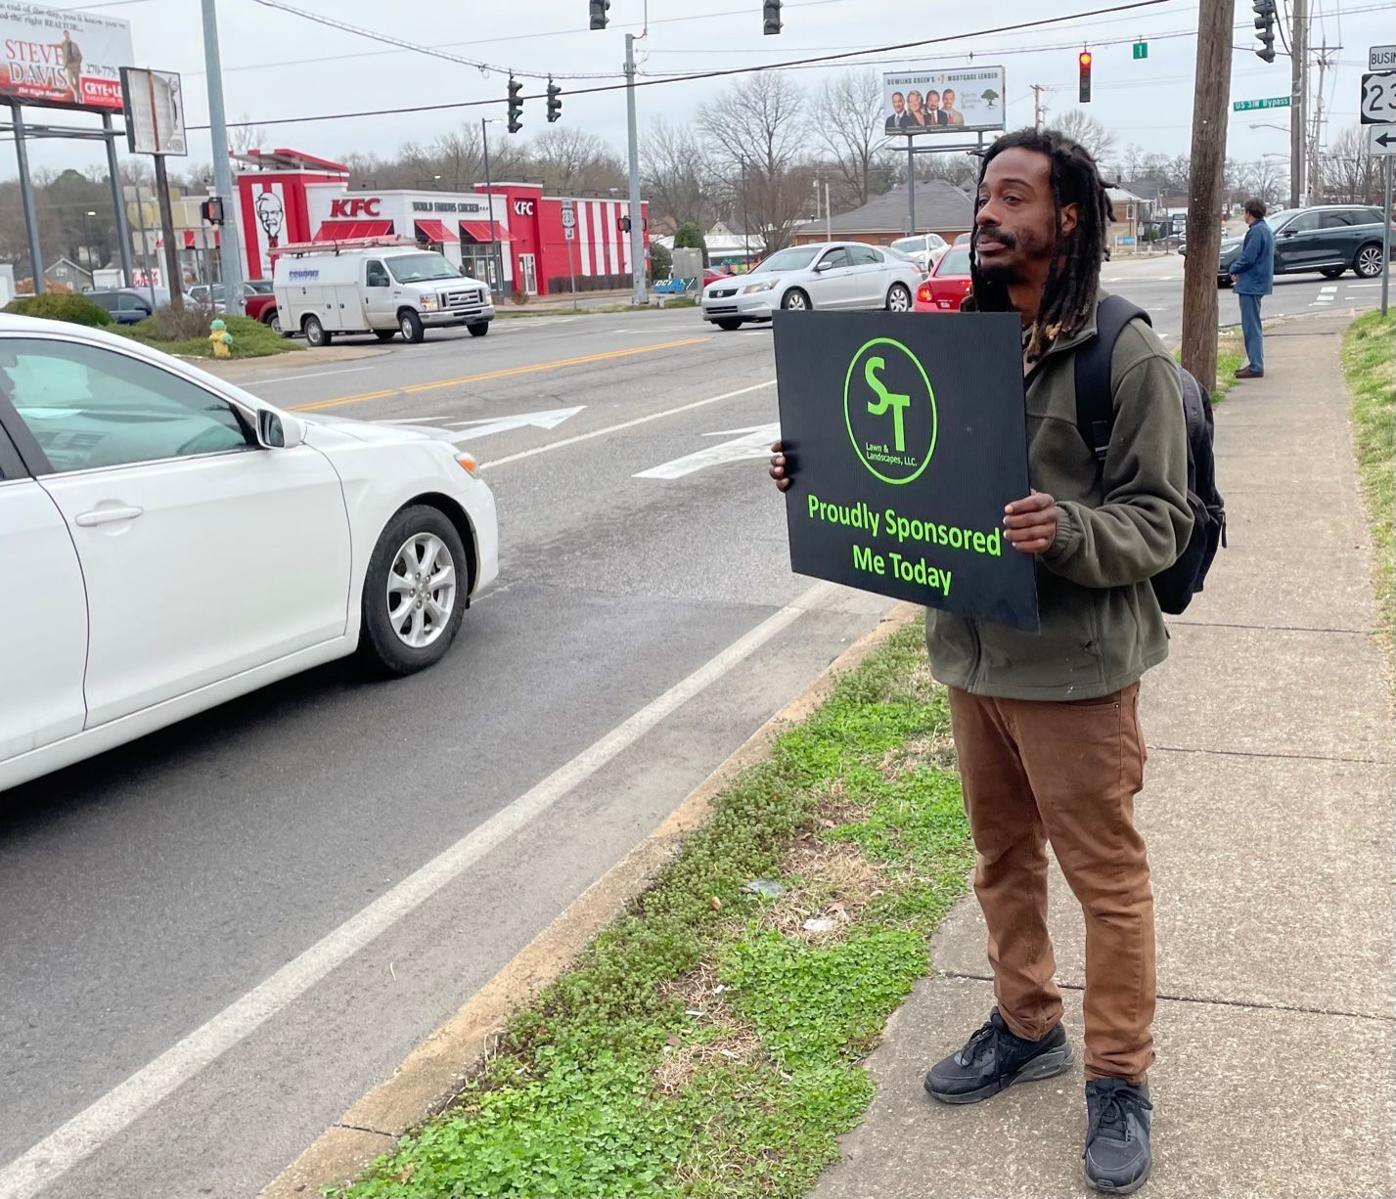 Sign of the times: Homeless 'fly signs' for sponsor businesses